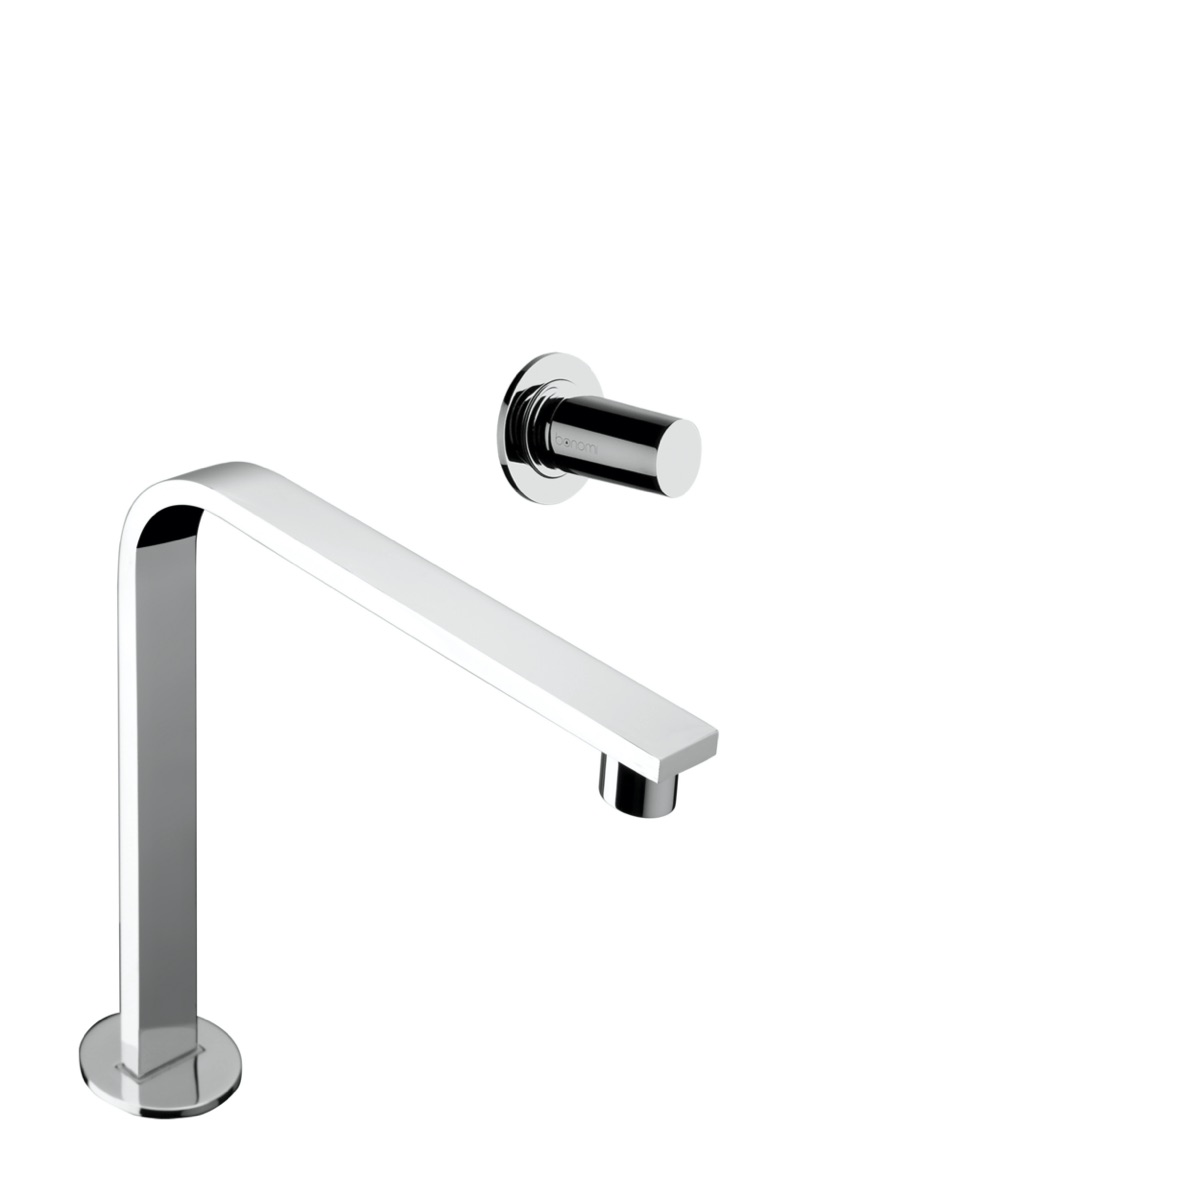 Wall mounted basin mixer with 243 mm spout with waste